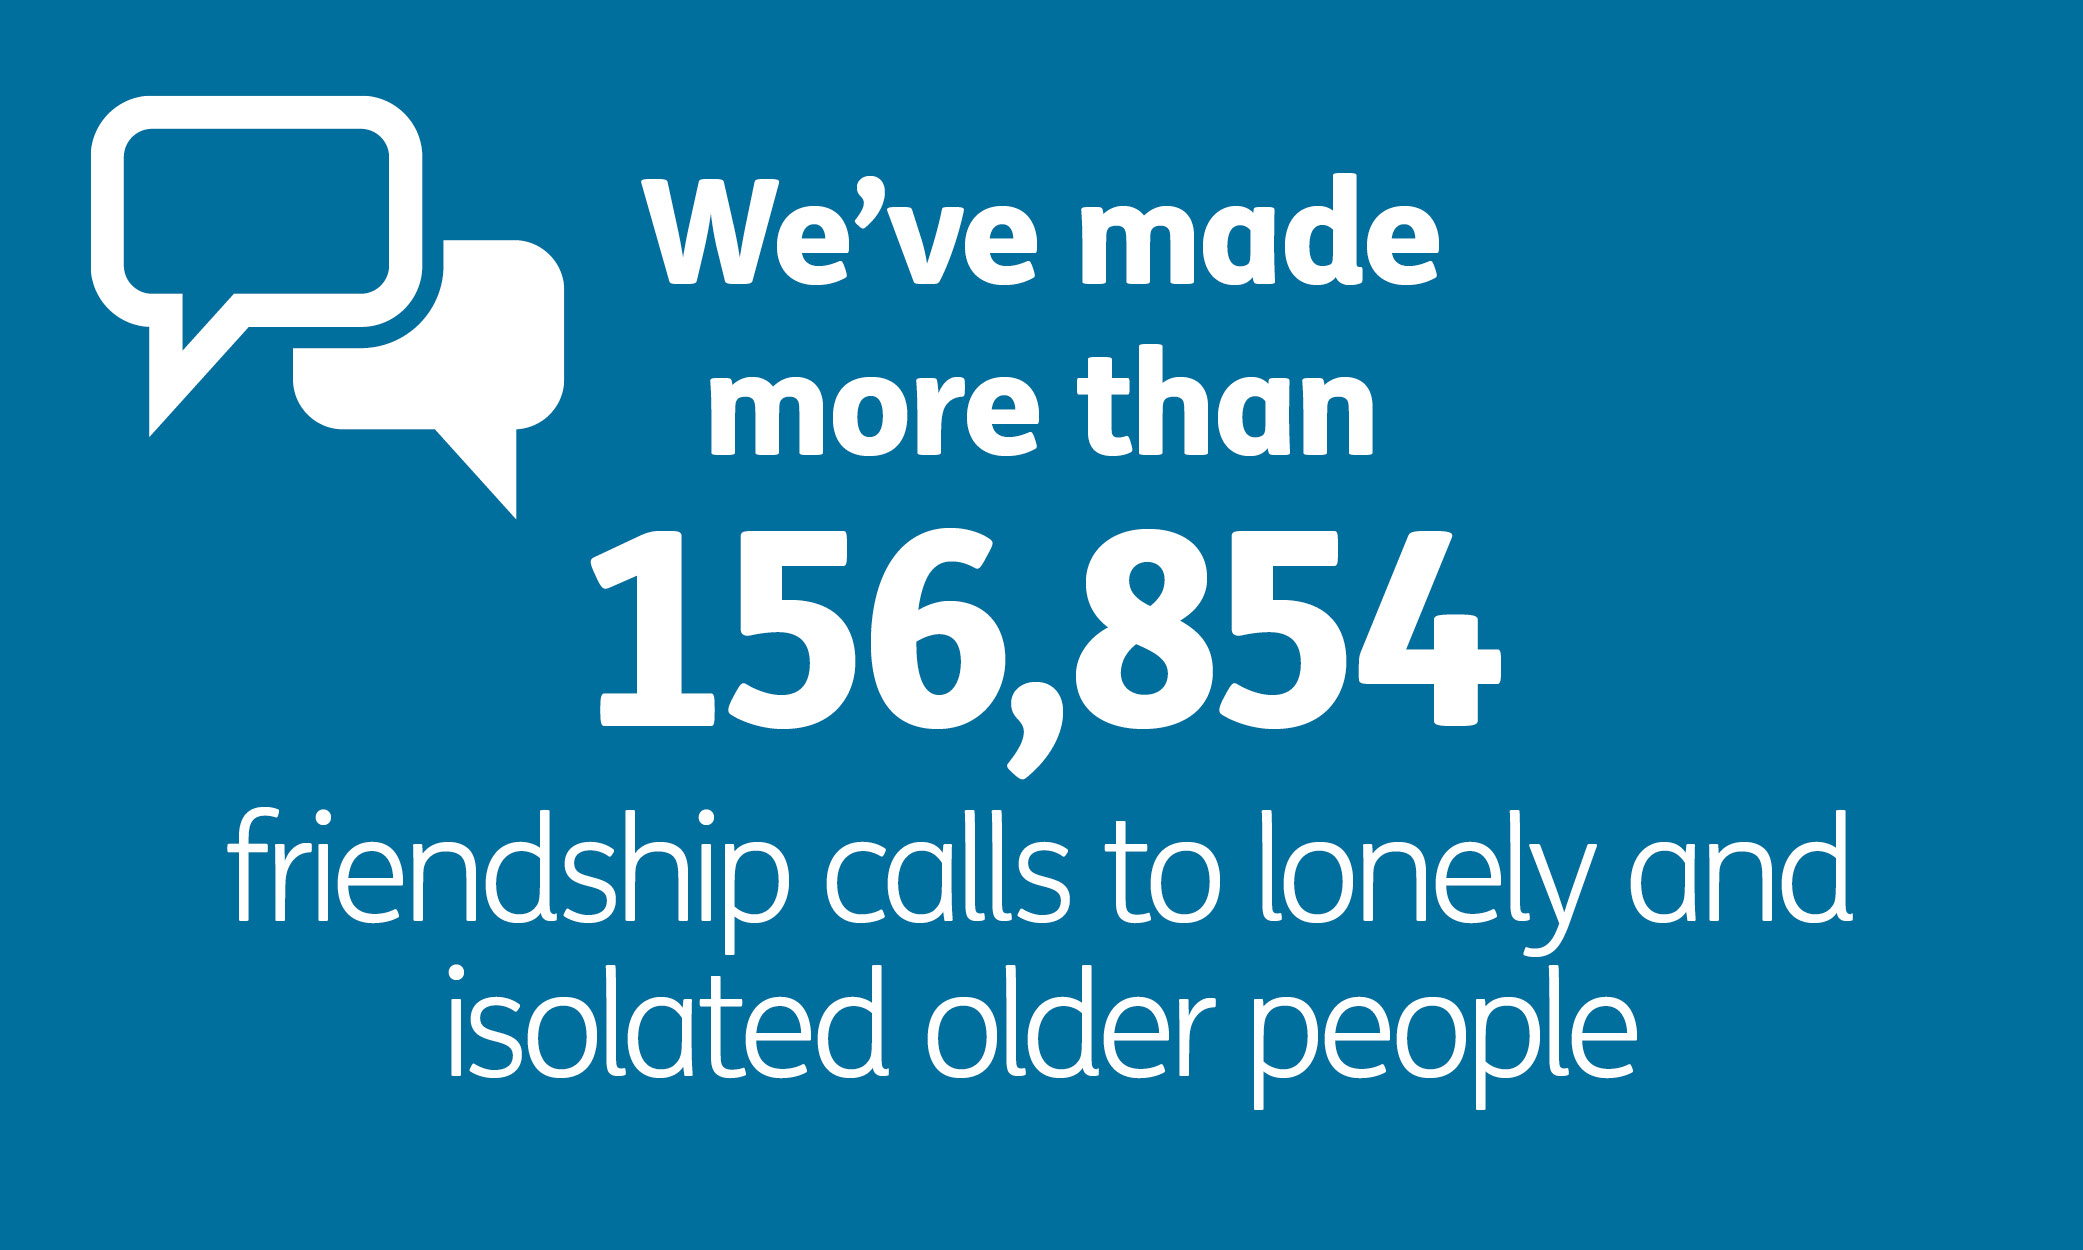 109,160 calls with lonely and isolated older people through The Silver Line Helpline and Age UK's telephone friendship services